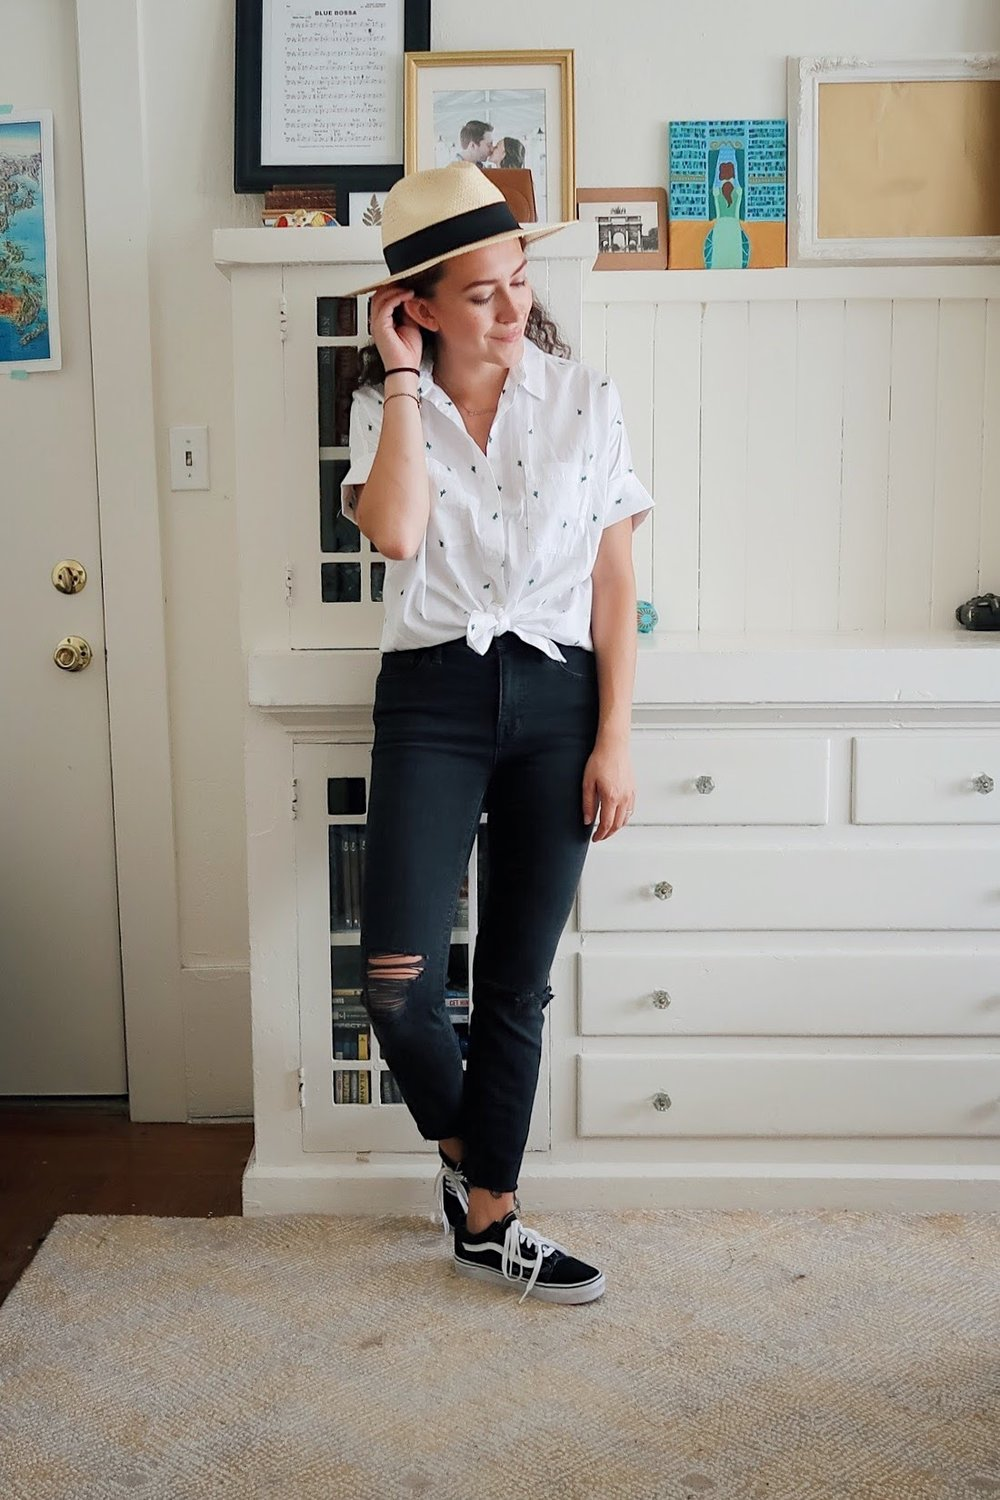 my mid-season mini haul included this cactus embroidered button up shirt from madewell. it's a perfectly subtle pattern for someone who likes simple clothes (like me). Styled with my black high rise distressed jeans, also from madewell, my low top old skool vans and a straw fedora.